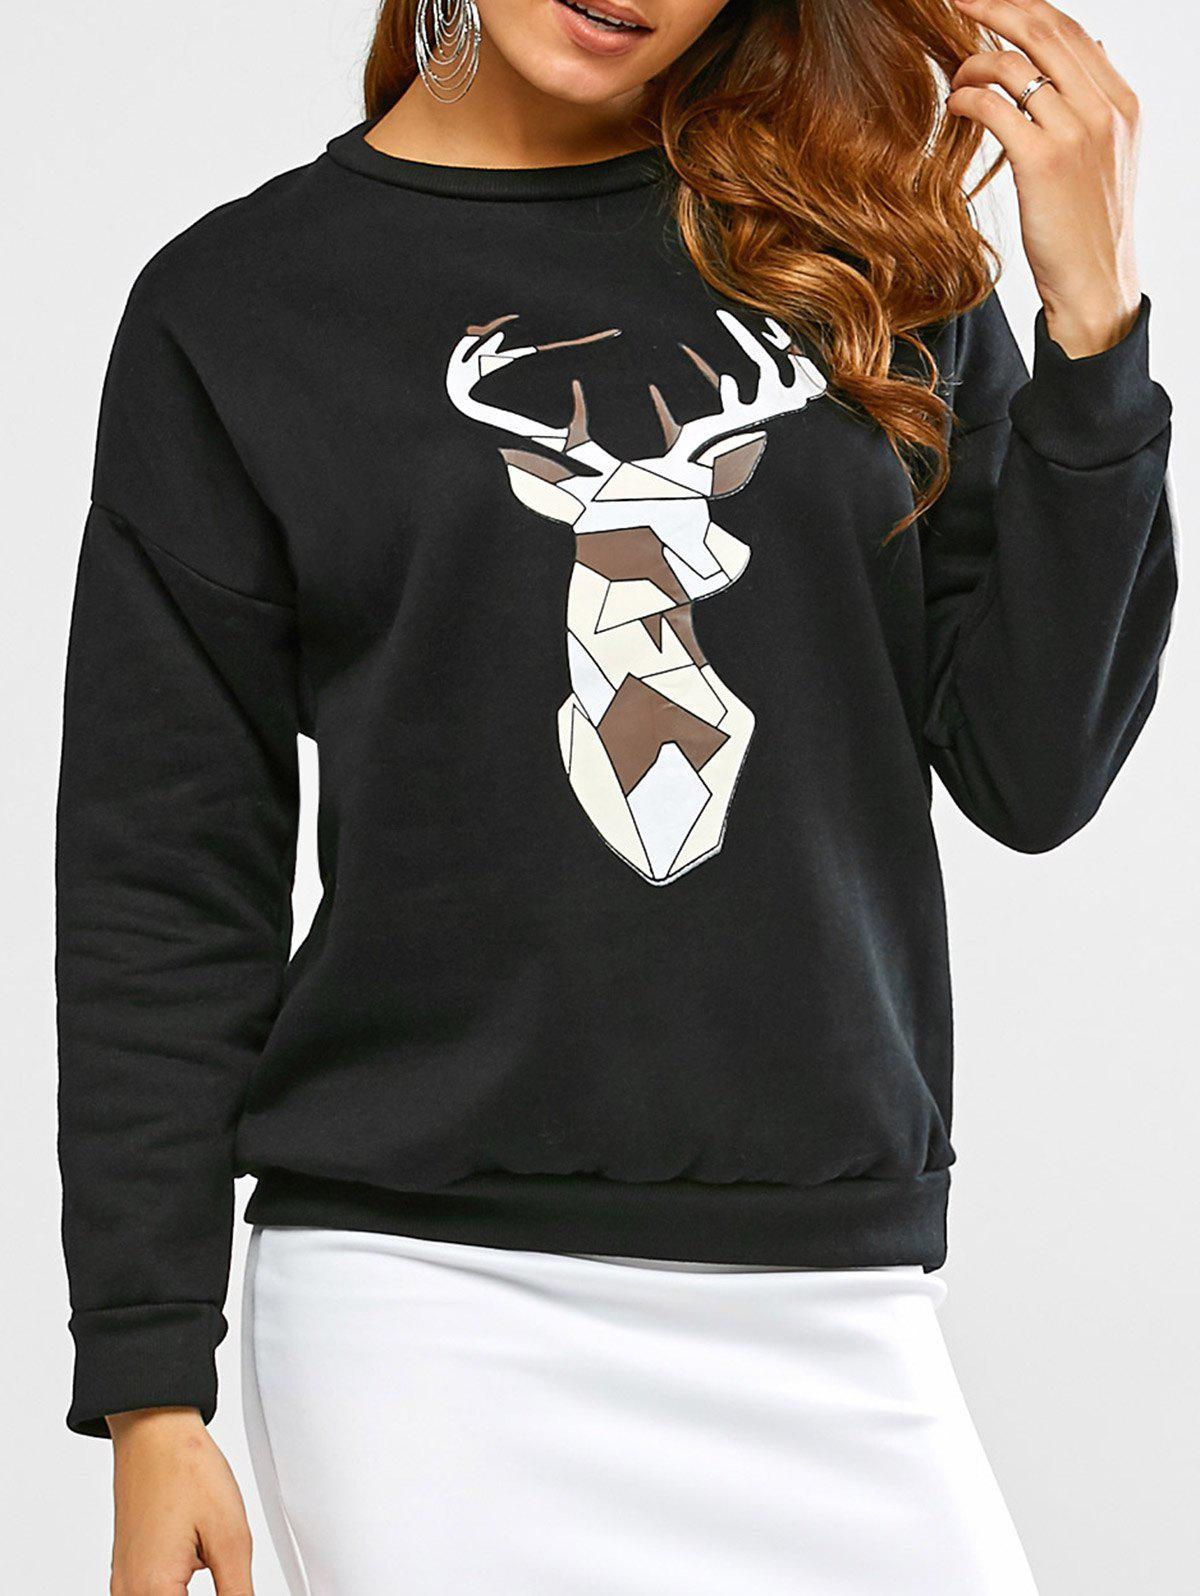 Shop Deer Print Sweatshirt